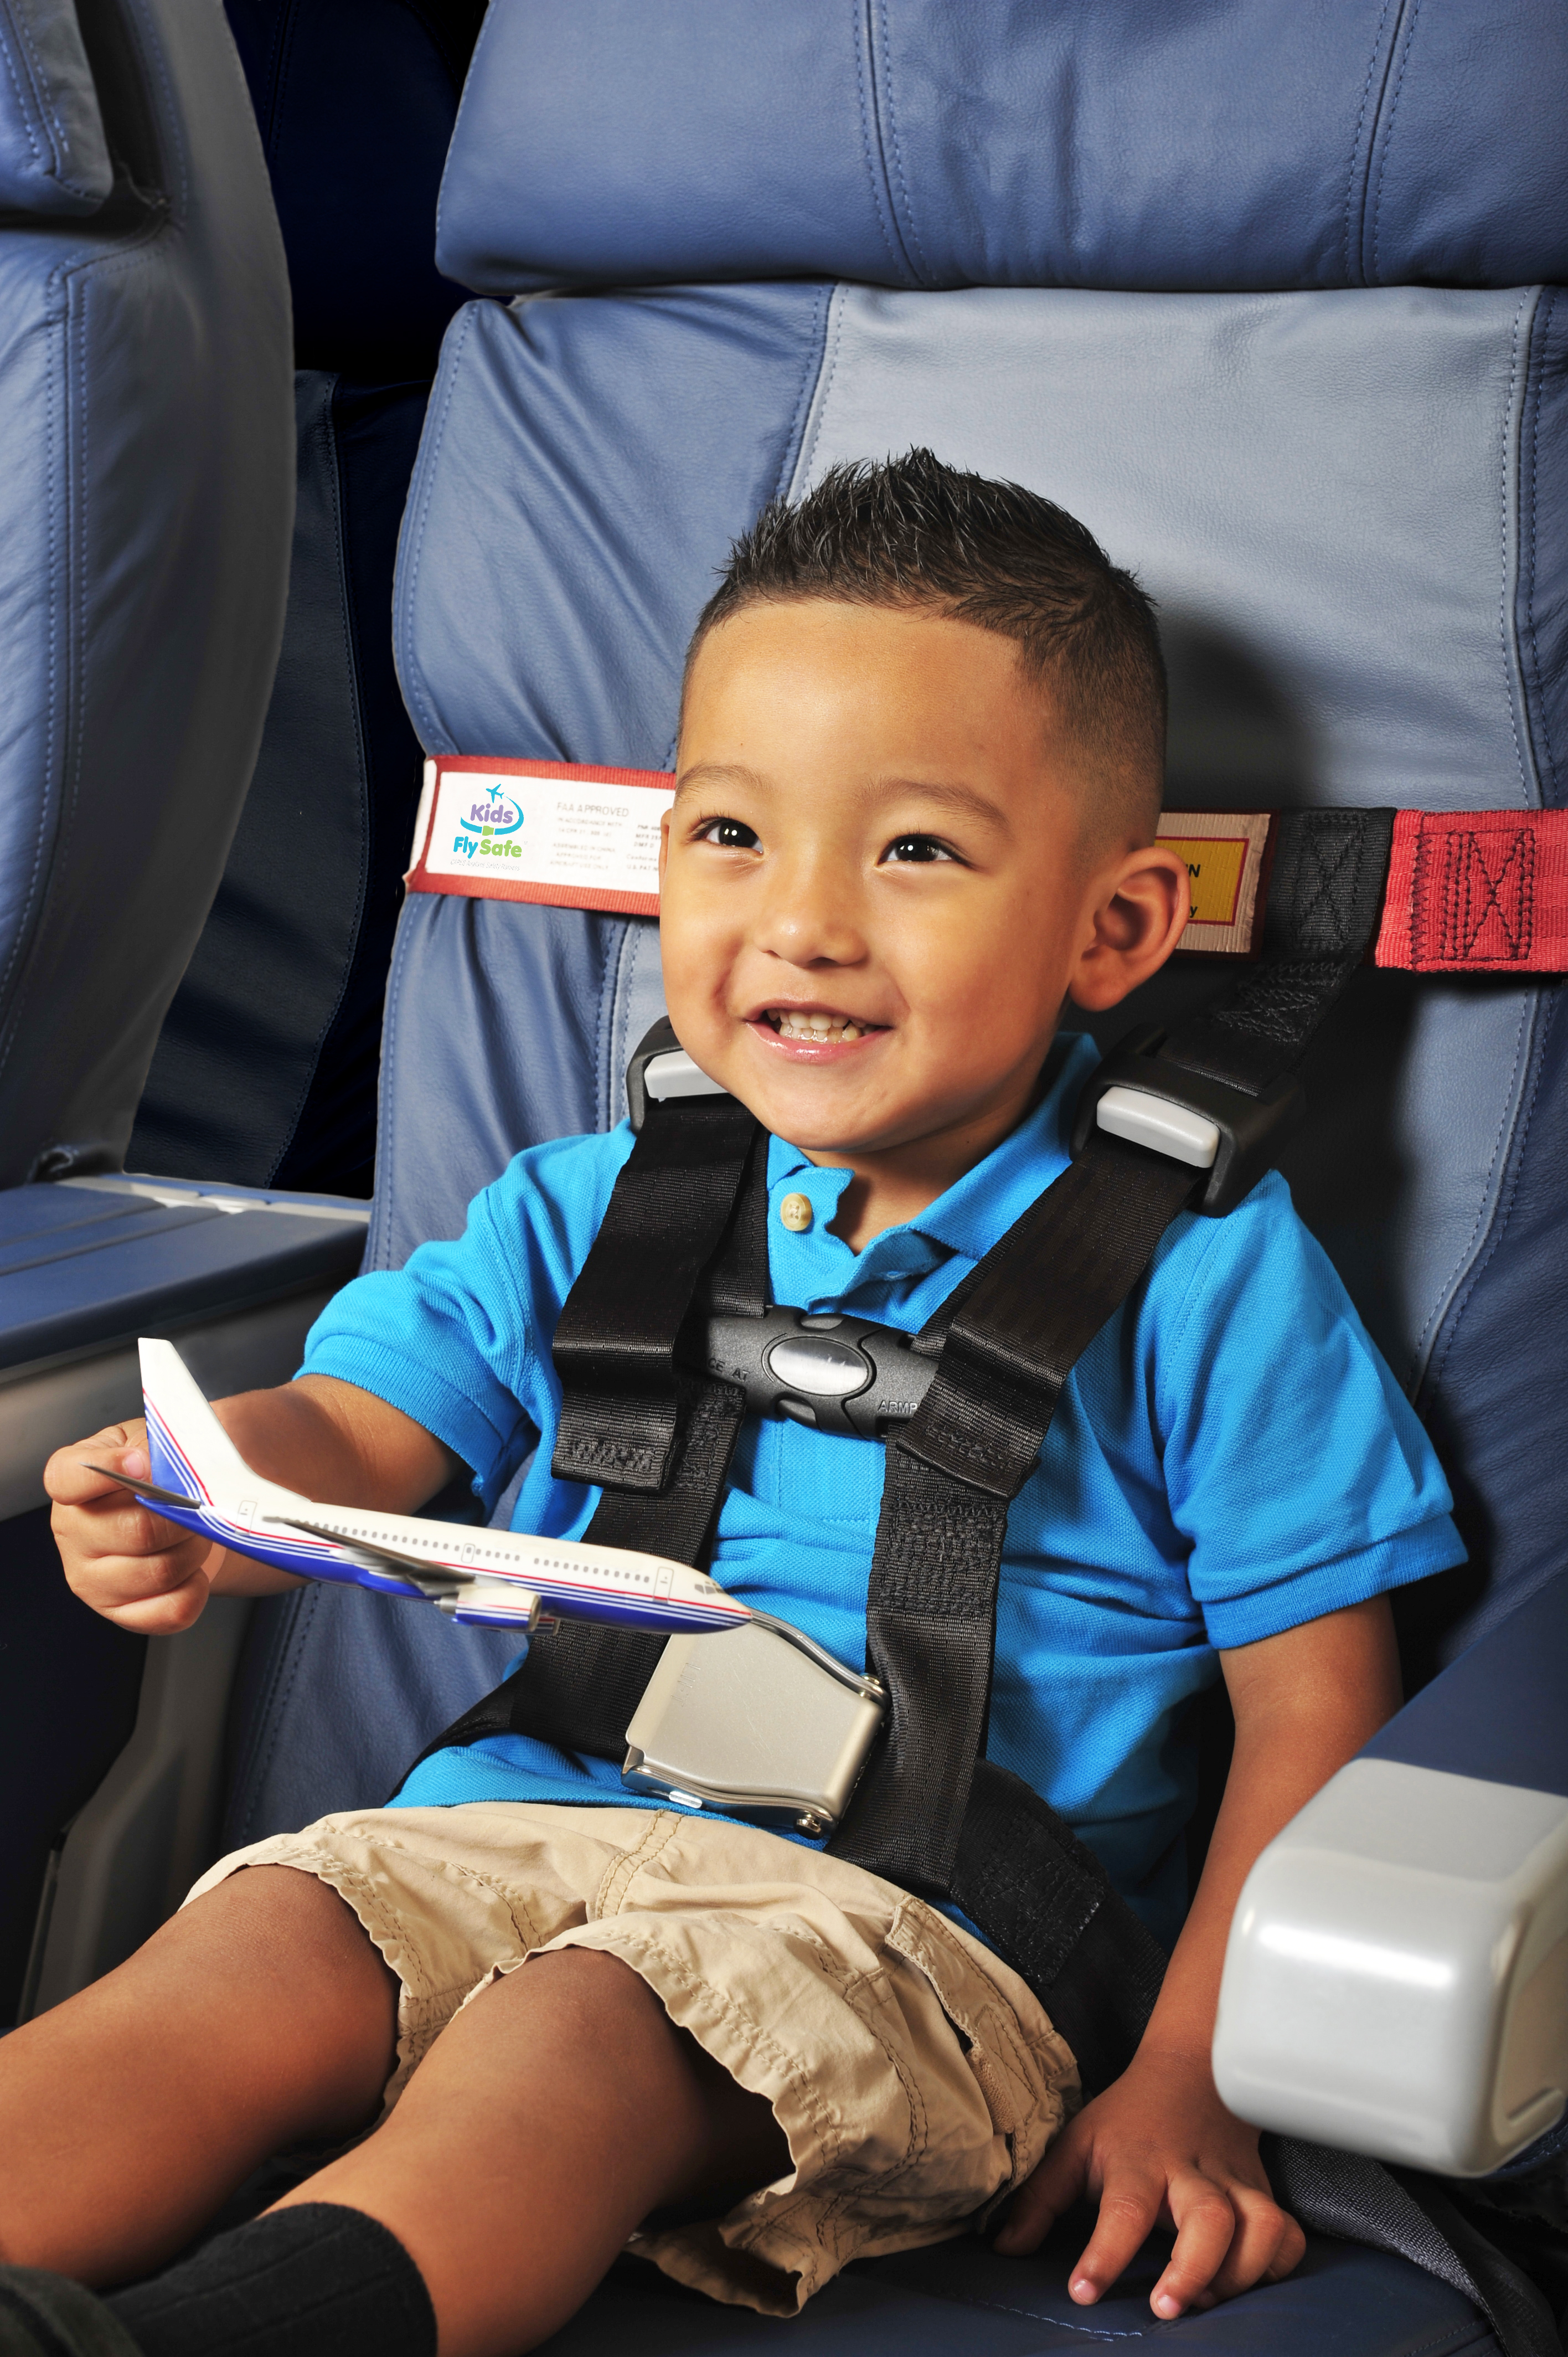 With FAA\'s New Kid Seat Safety Rule, Will Kids Fly Safer?